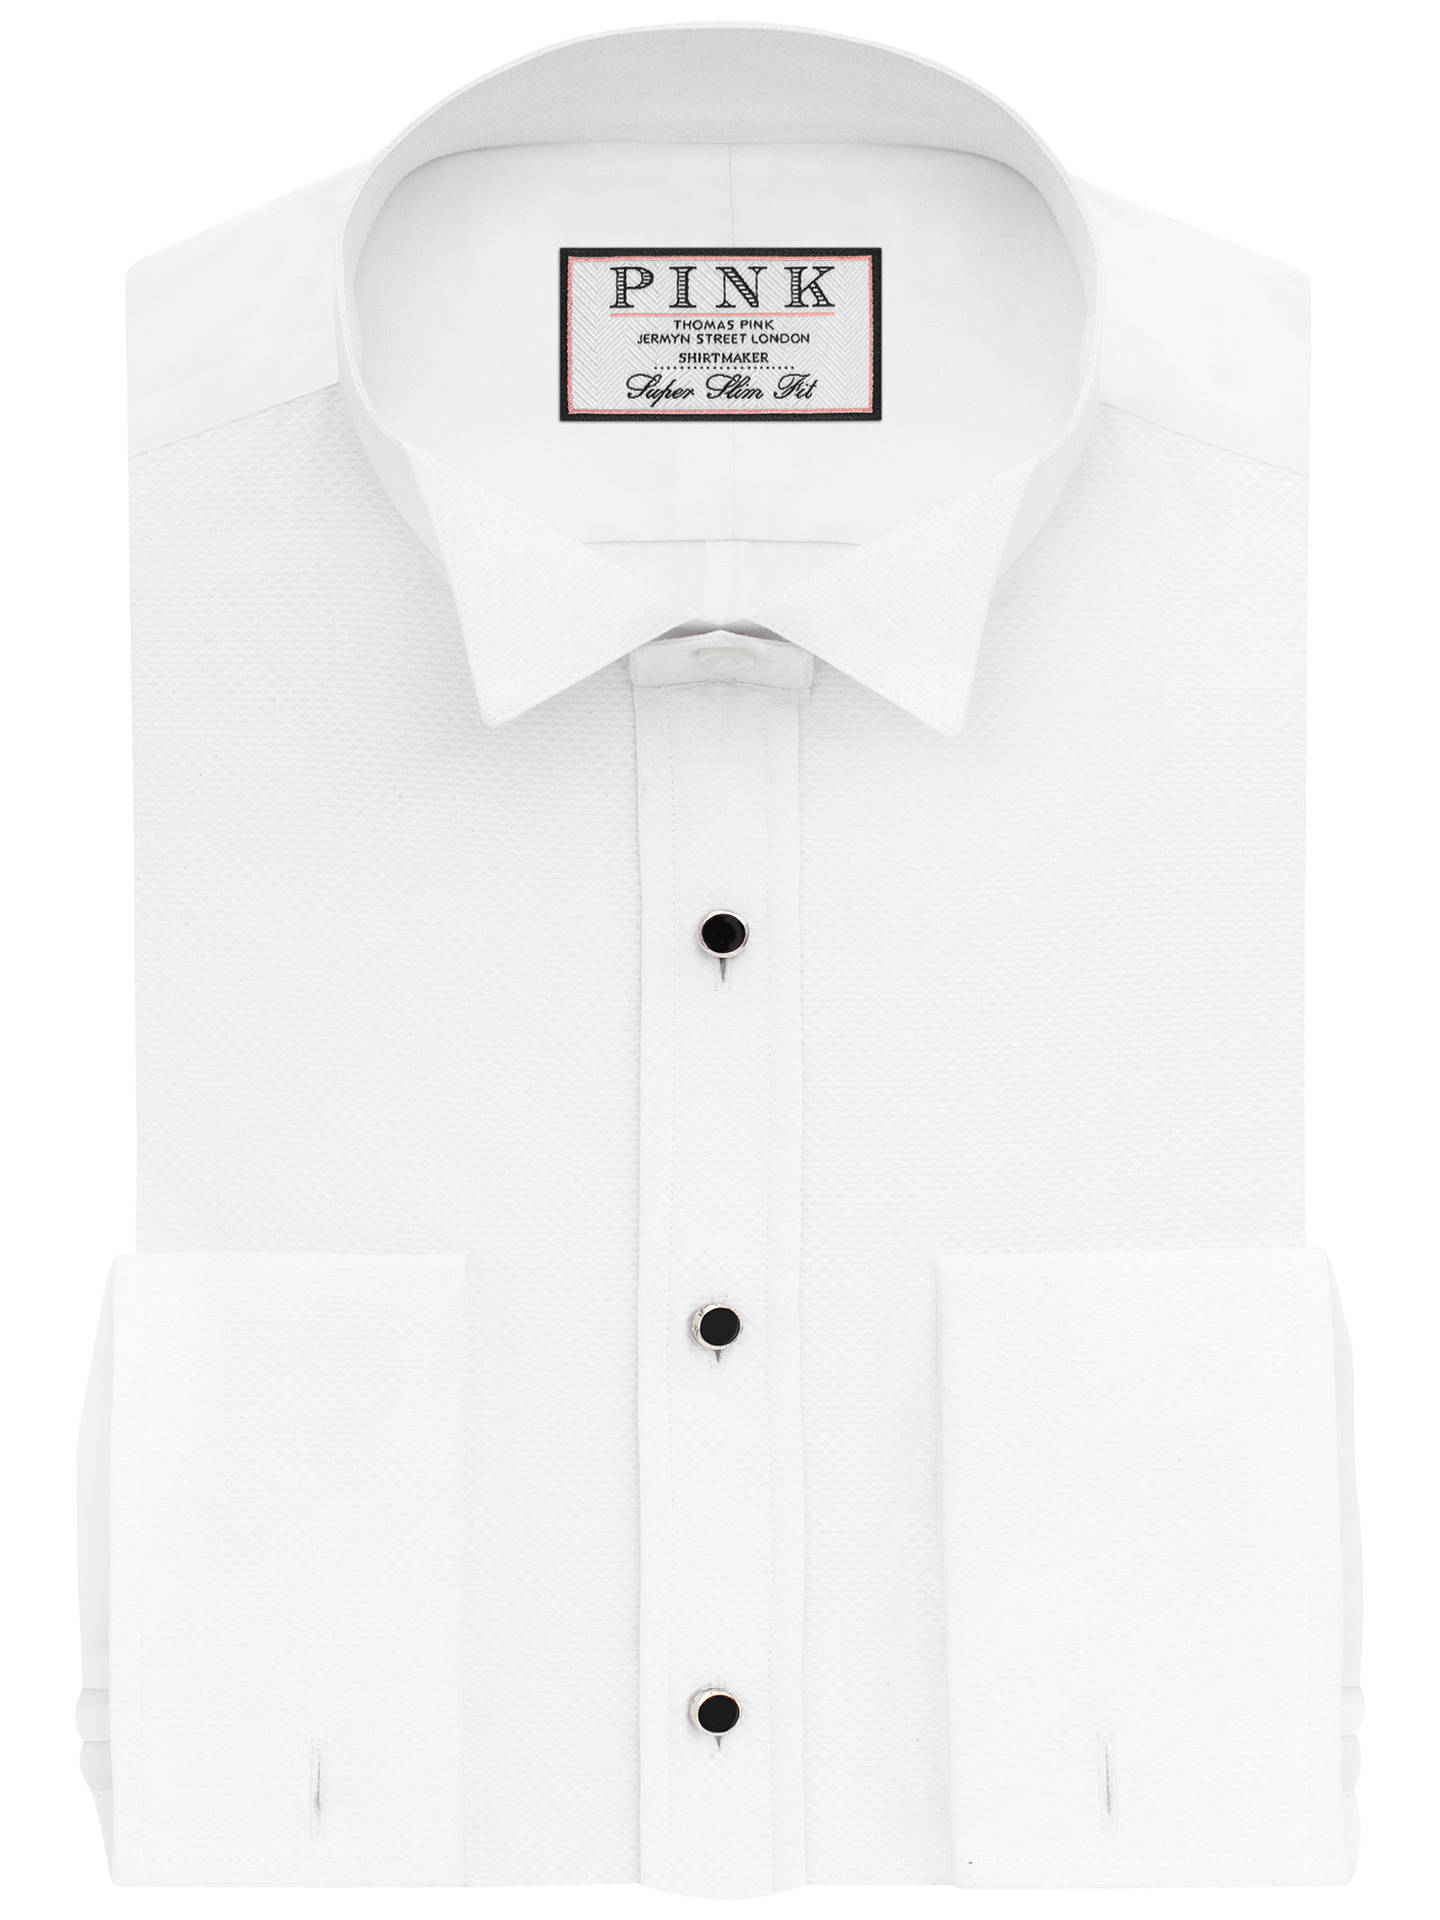 Thomas Pink Marcella Wing Collar Super Slim Fit Dress Shirt White